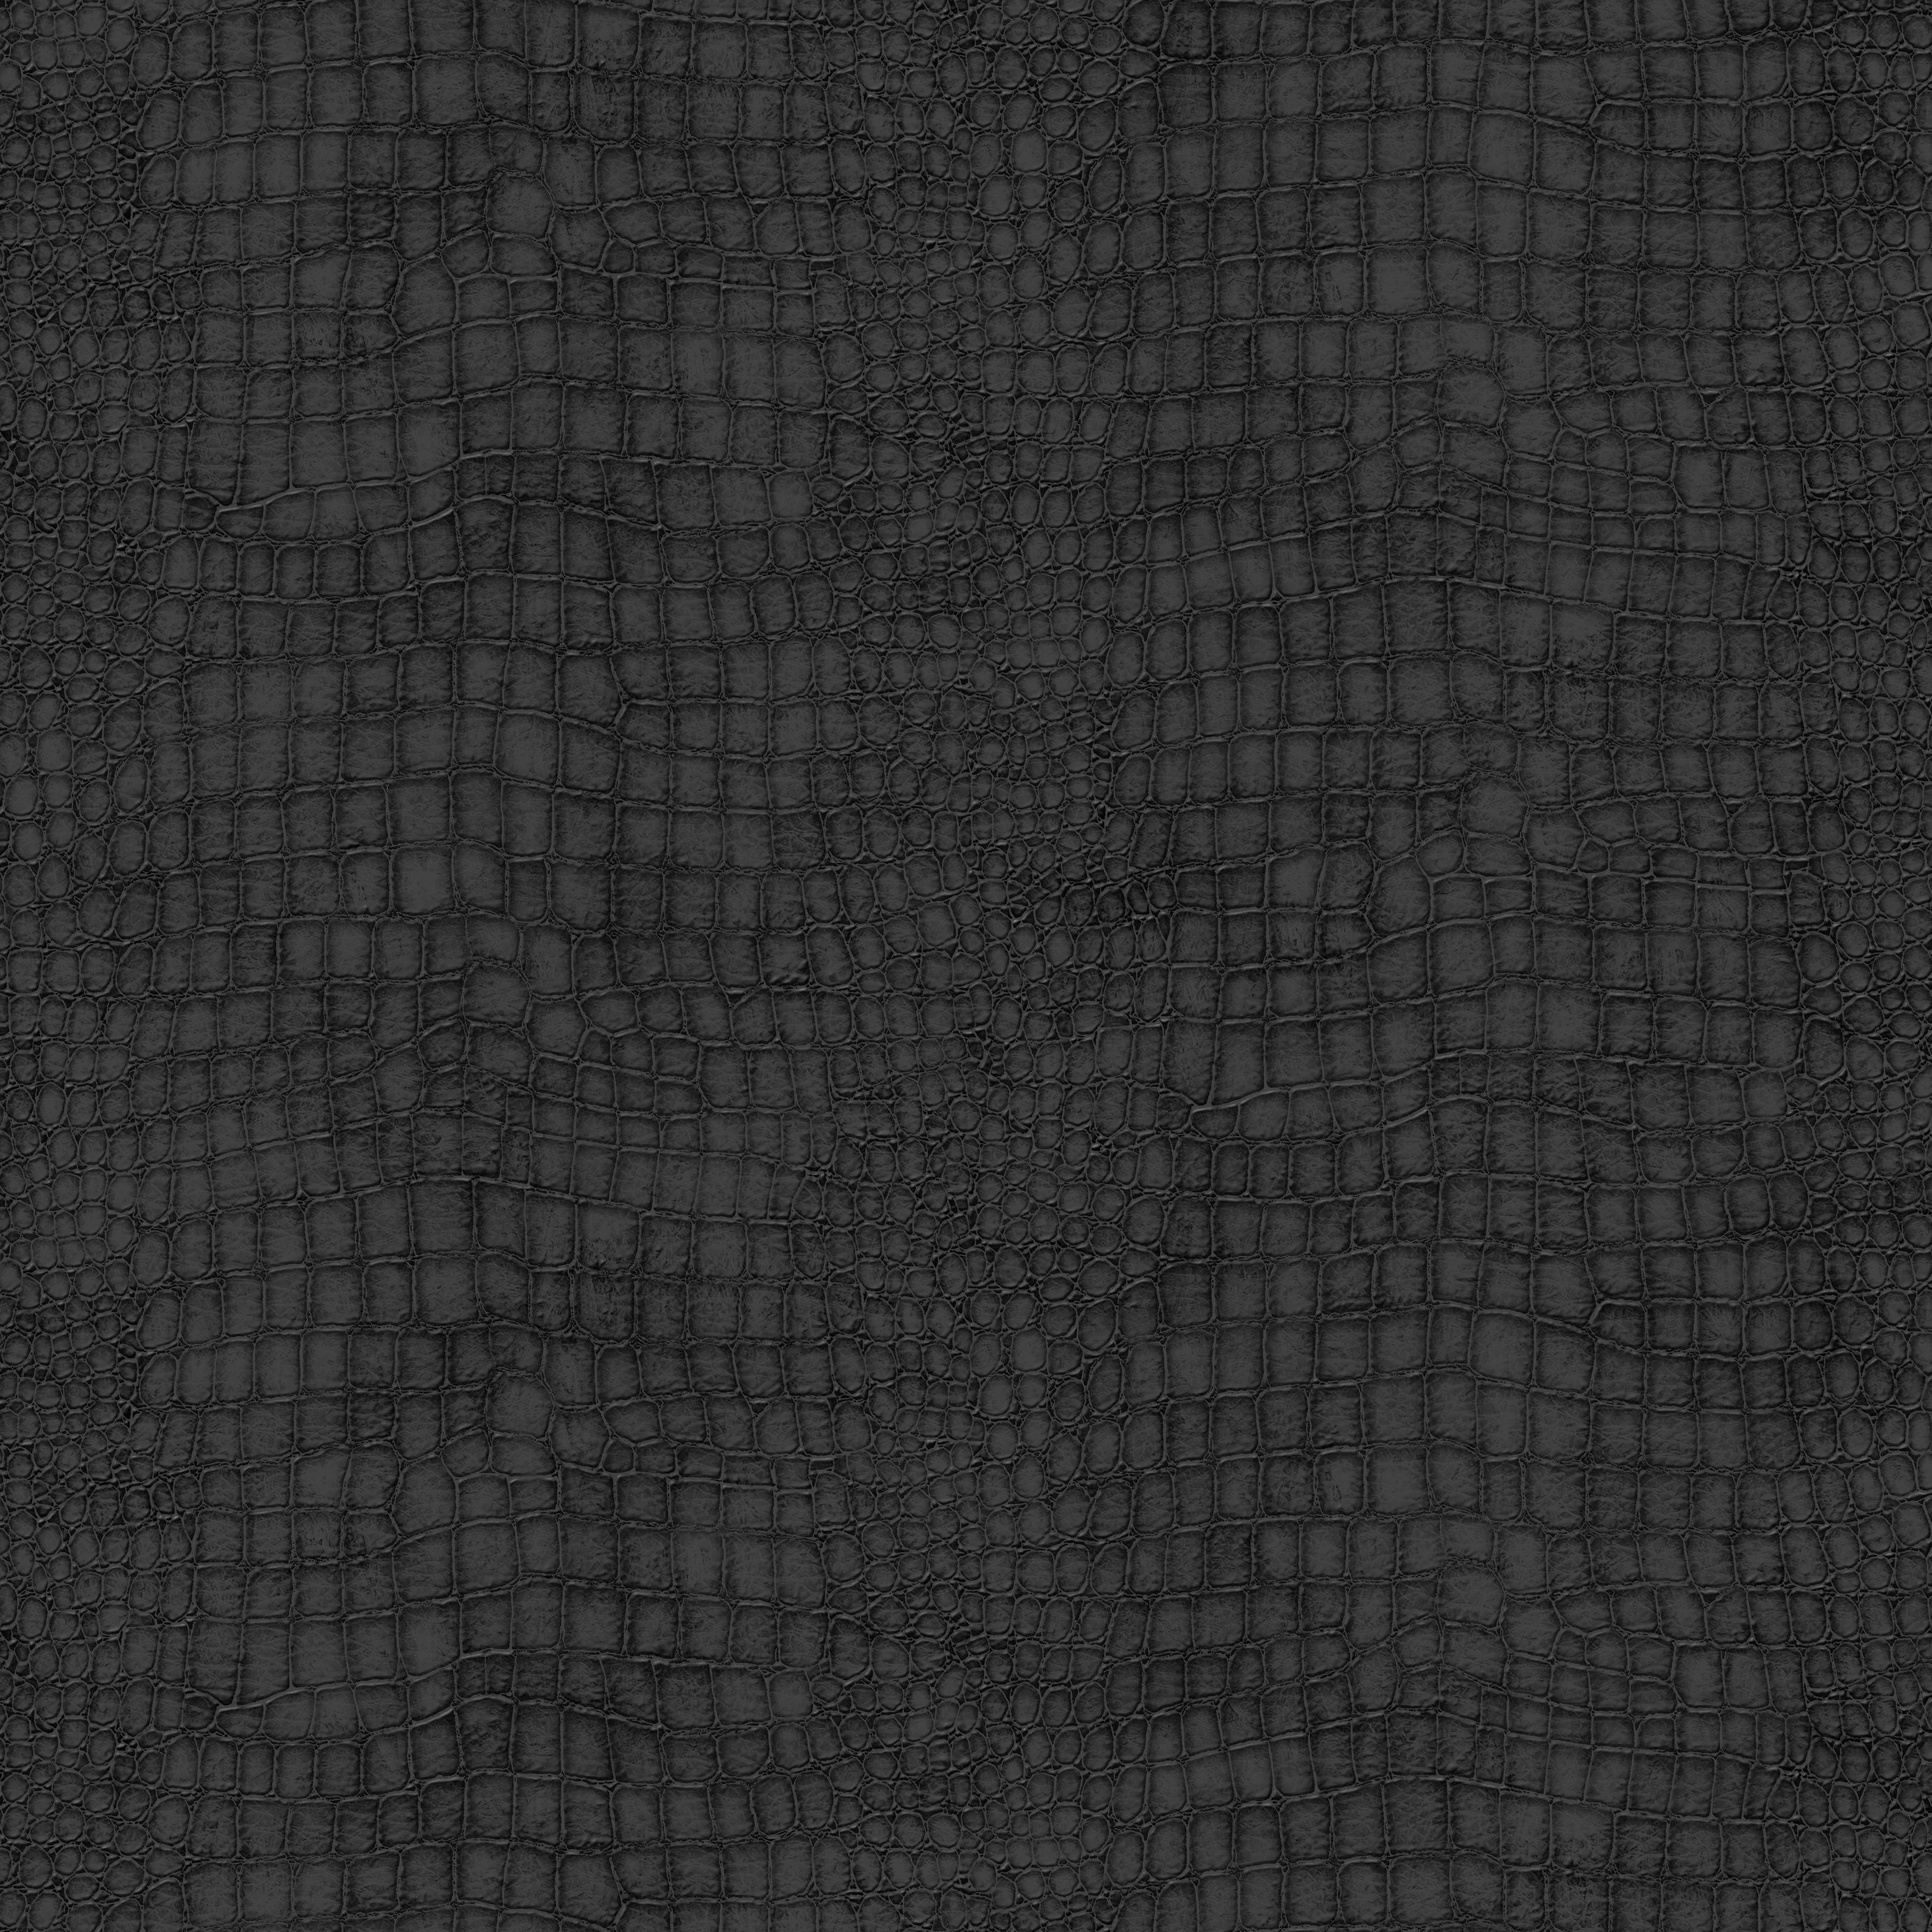 Graham brown black crocodile skin wallpaper for Kitchen cabinets lowes with papier peint papillons